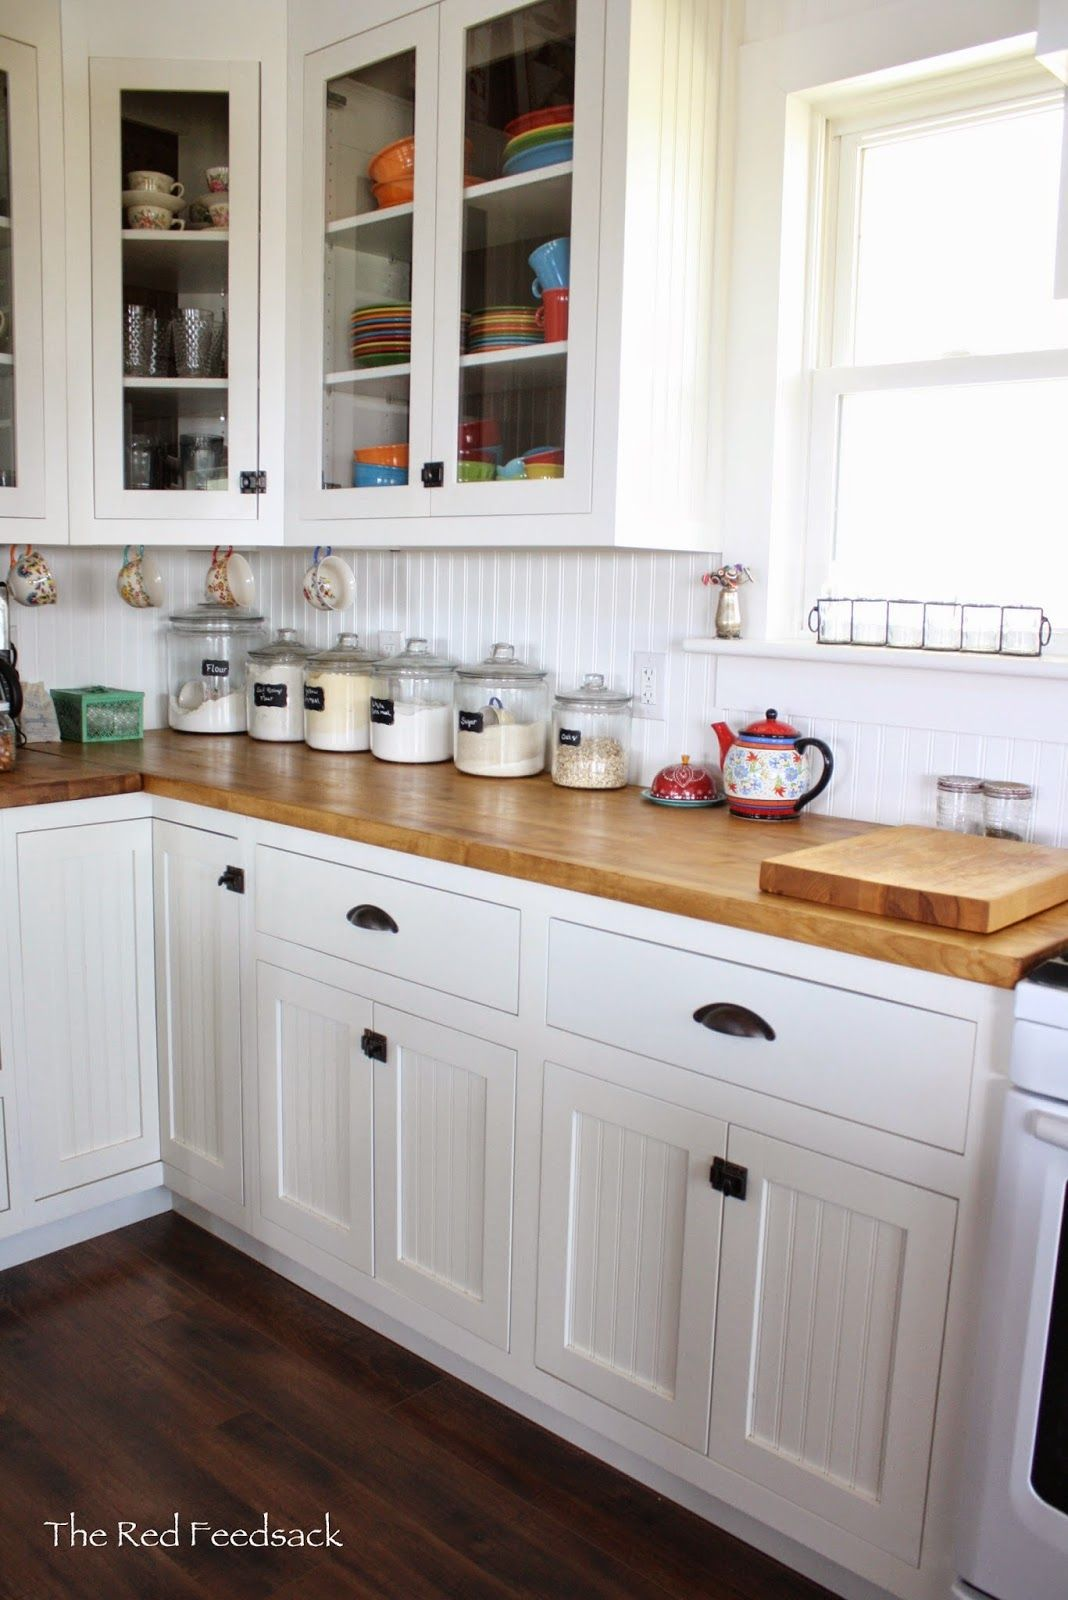 Tung Oil For Butcher Block Countertops The Red Feedsack Update On Butcher Block Countertops